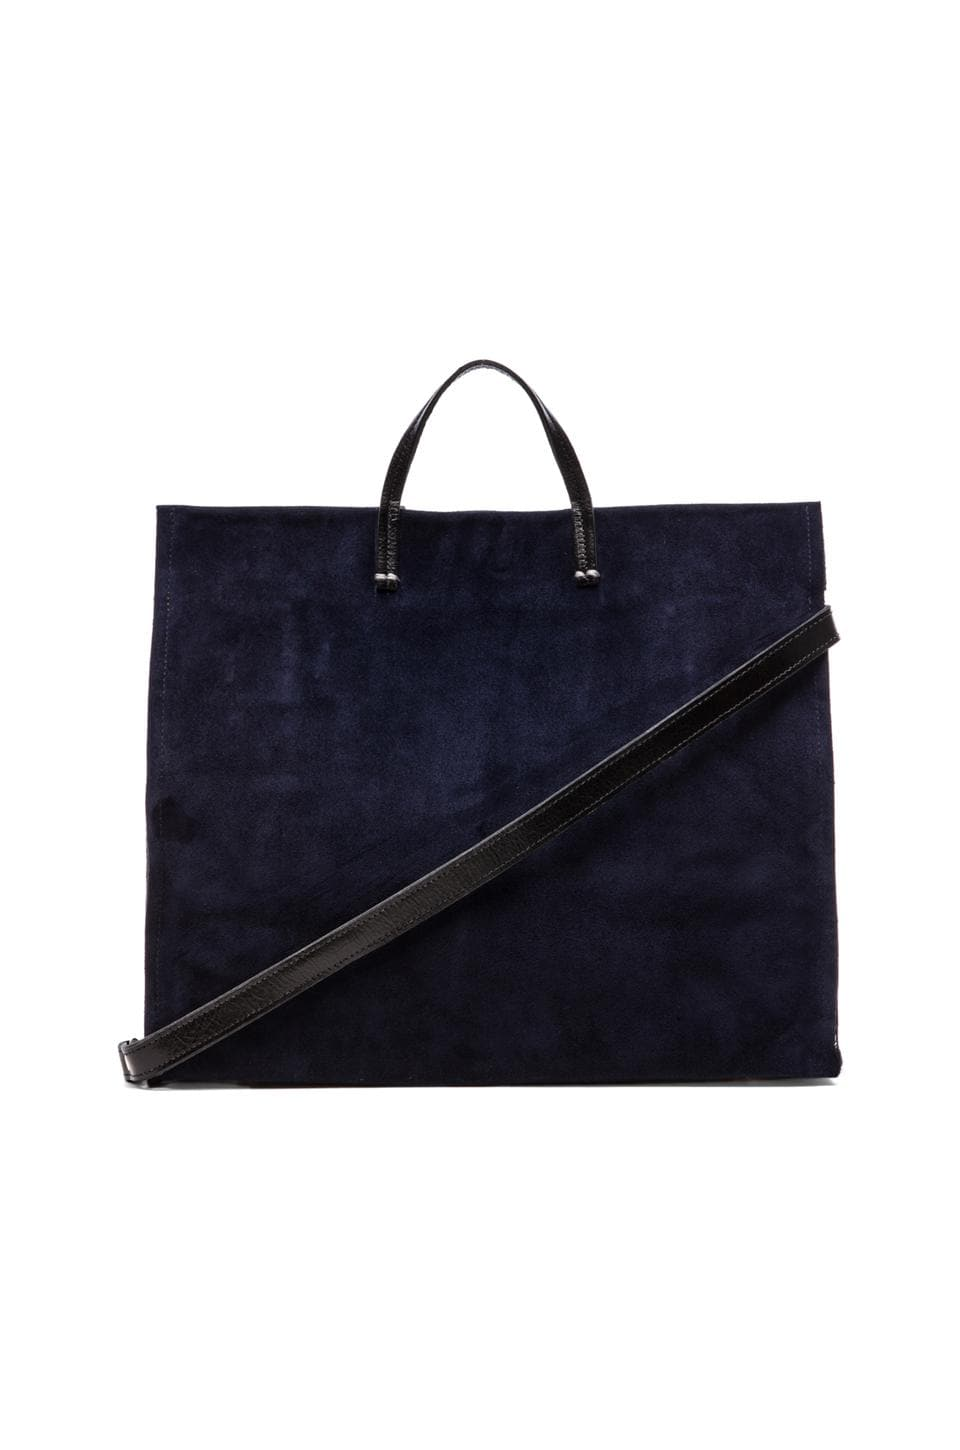 Clare V. Simple Tote in Navy Suede